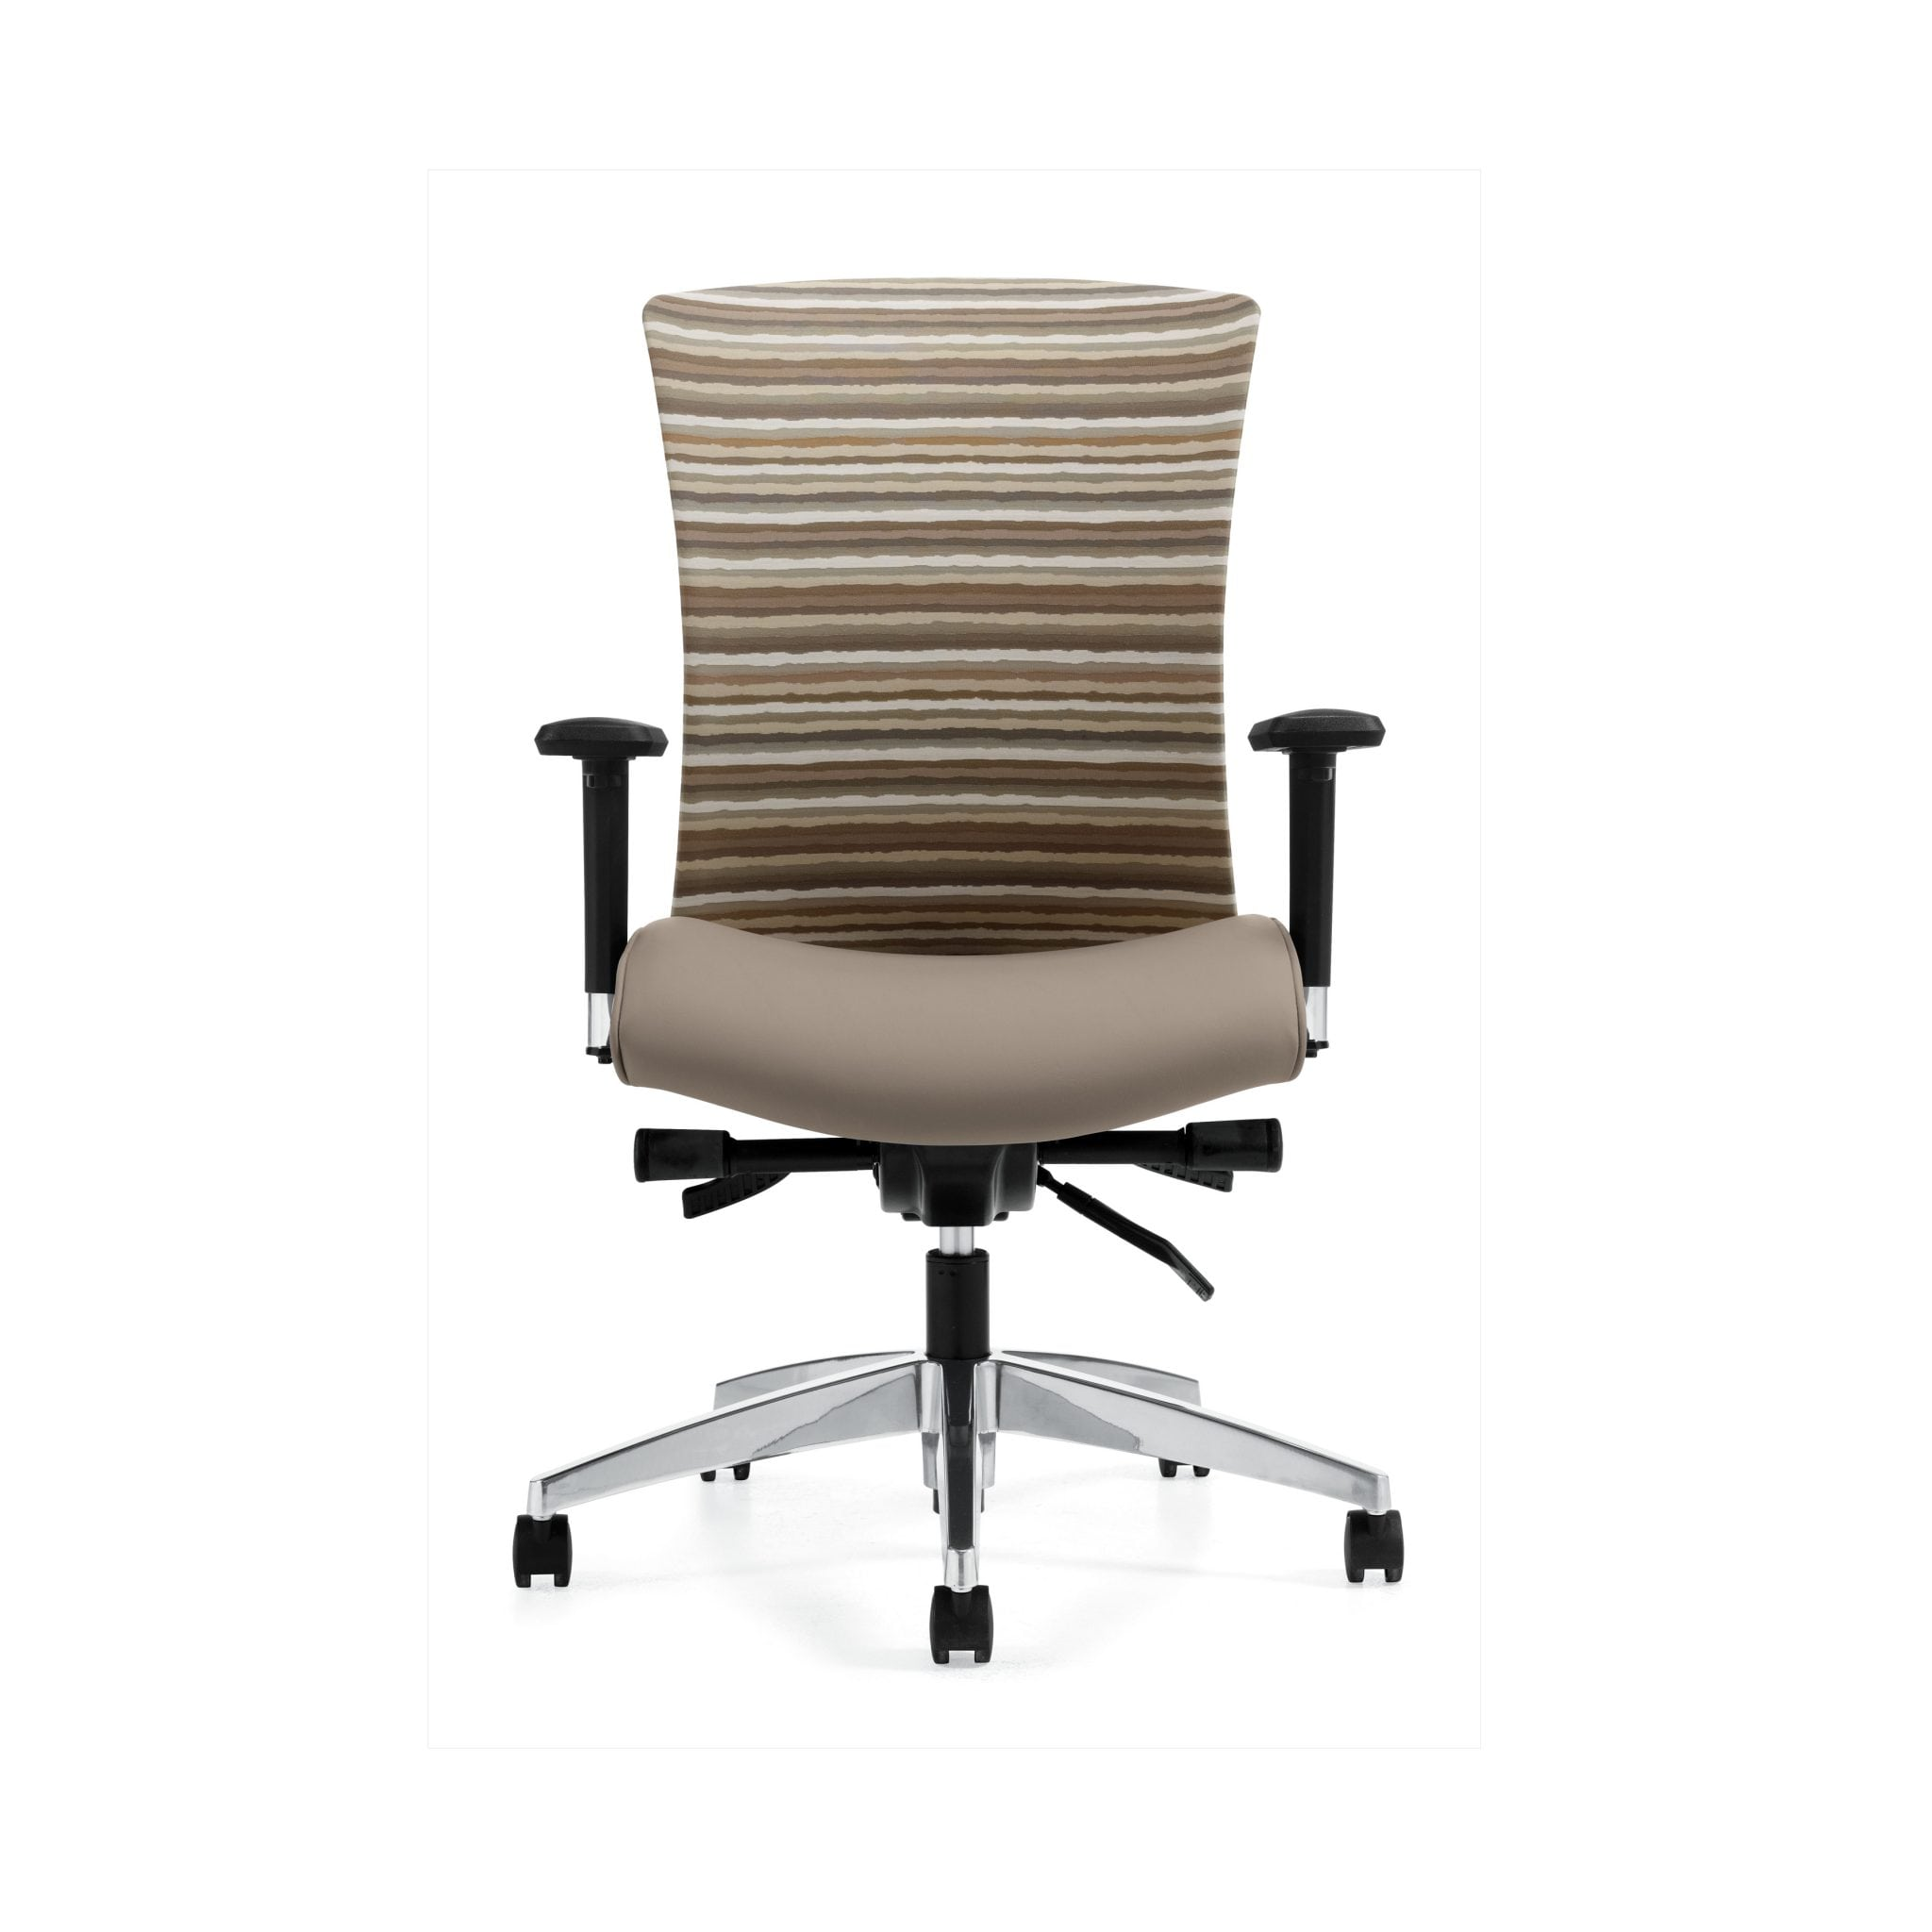 Vion Chair - Greenguard Gold Certified, modern and stylish